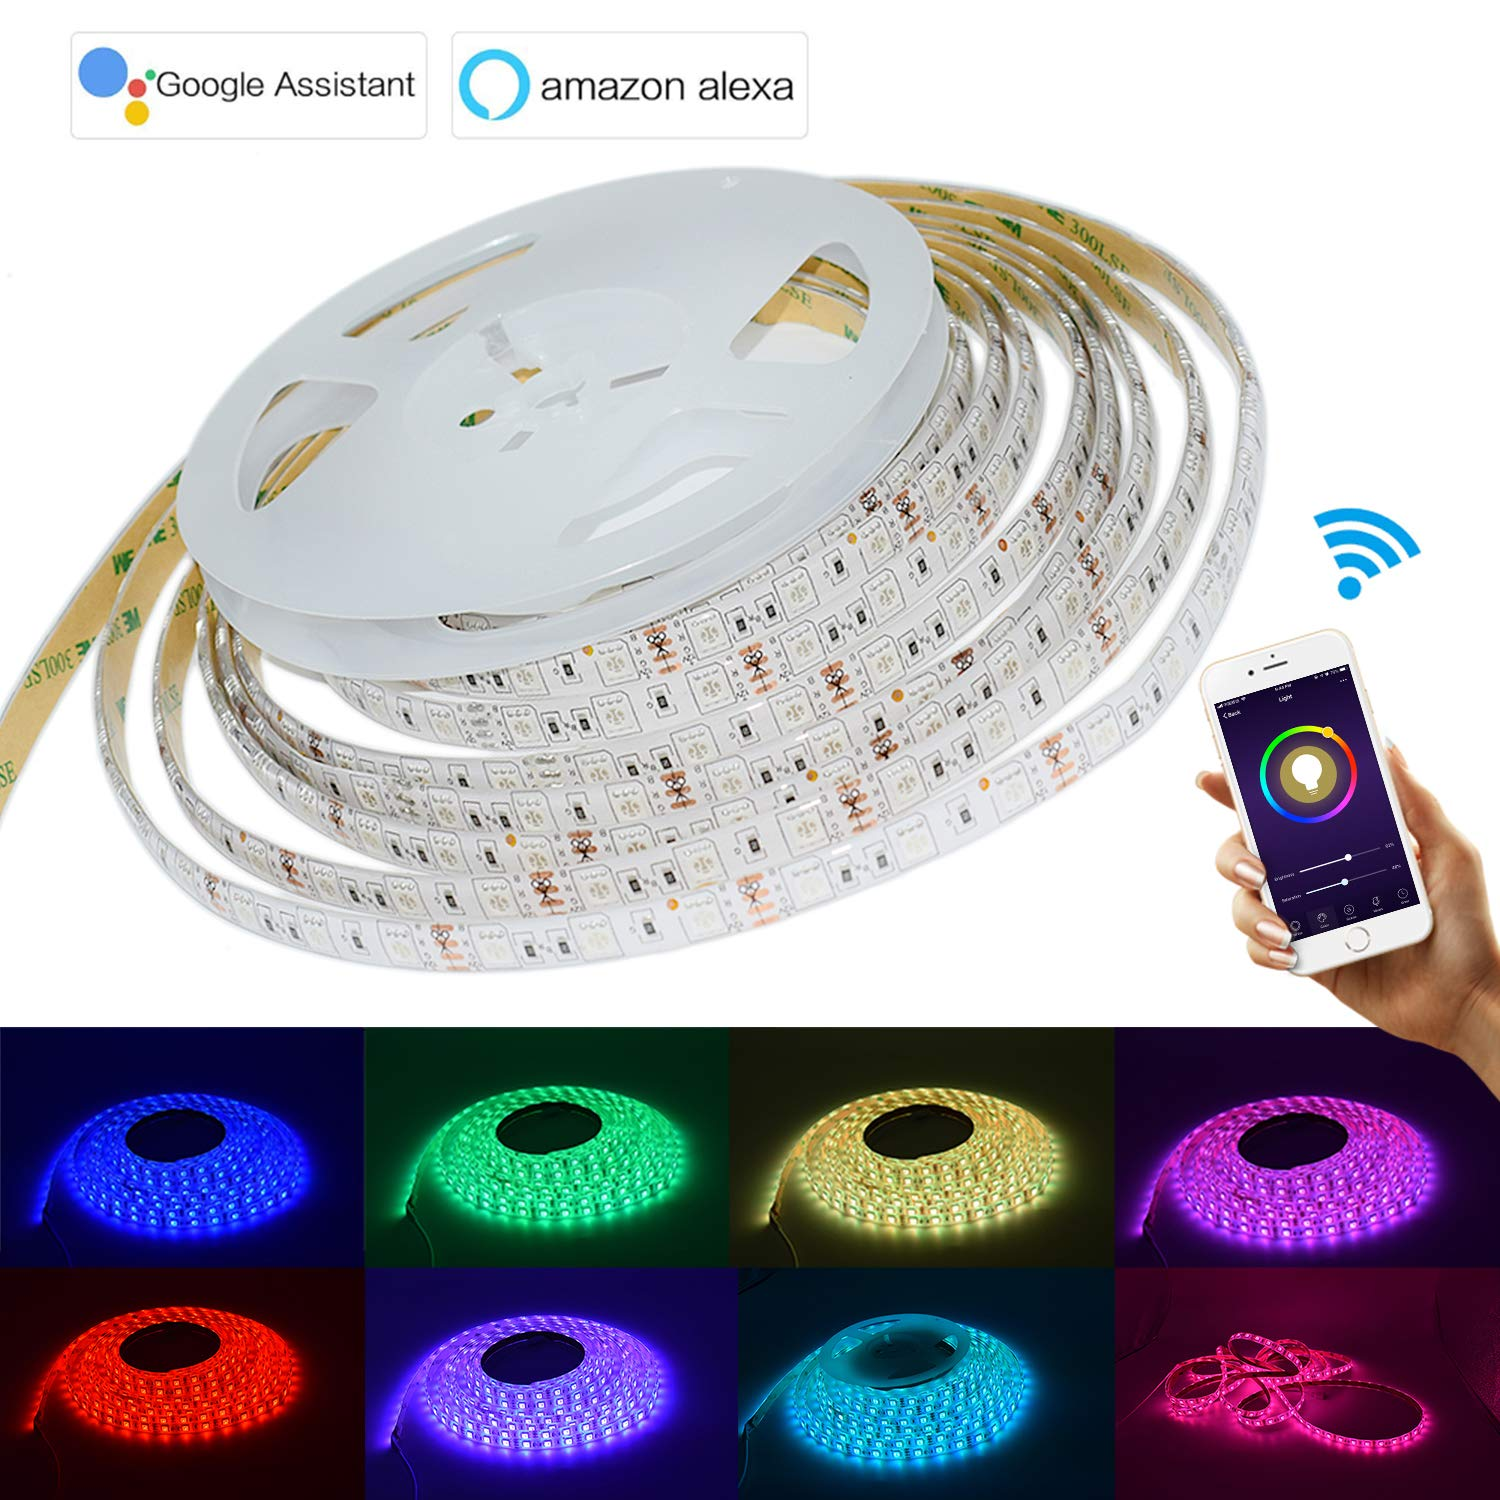 LED Strip Lights 16.4Foots 5Meter WiFi Wireless Smart Phone Controlled Waterproof Light Strip with 300 LEDs Work with Amazon Alexa Echo No Hub Required Compatible with Android and iOS